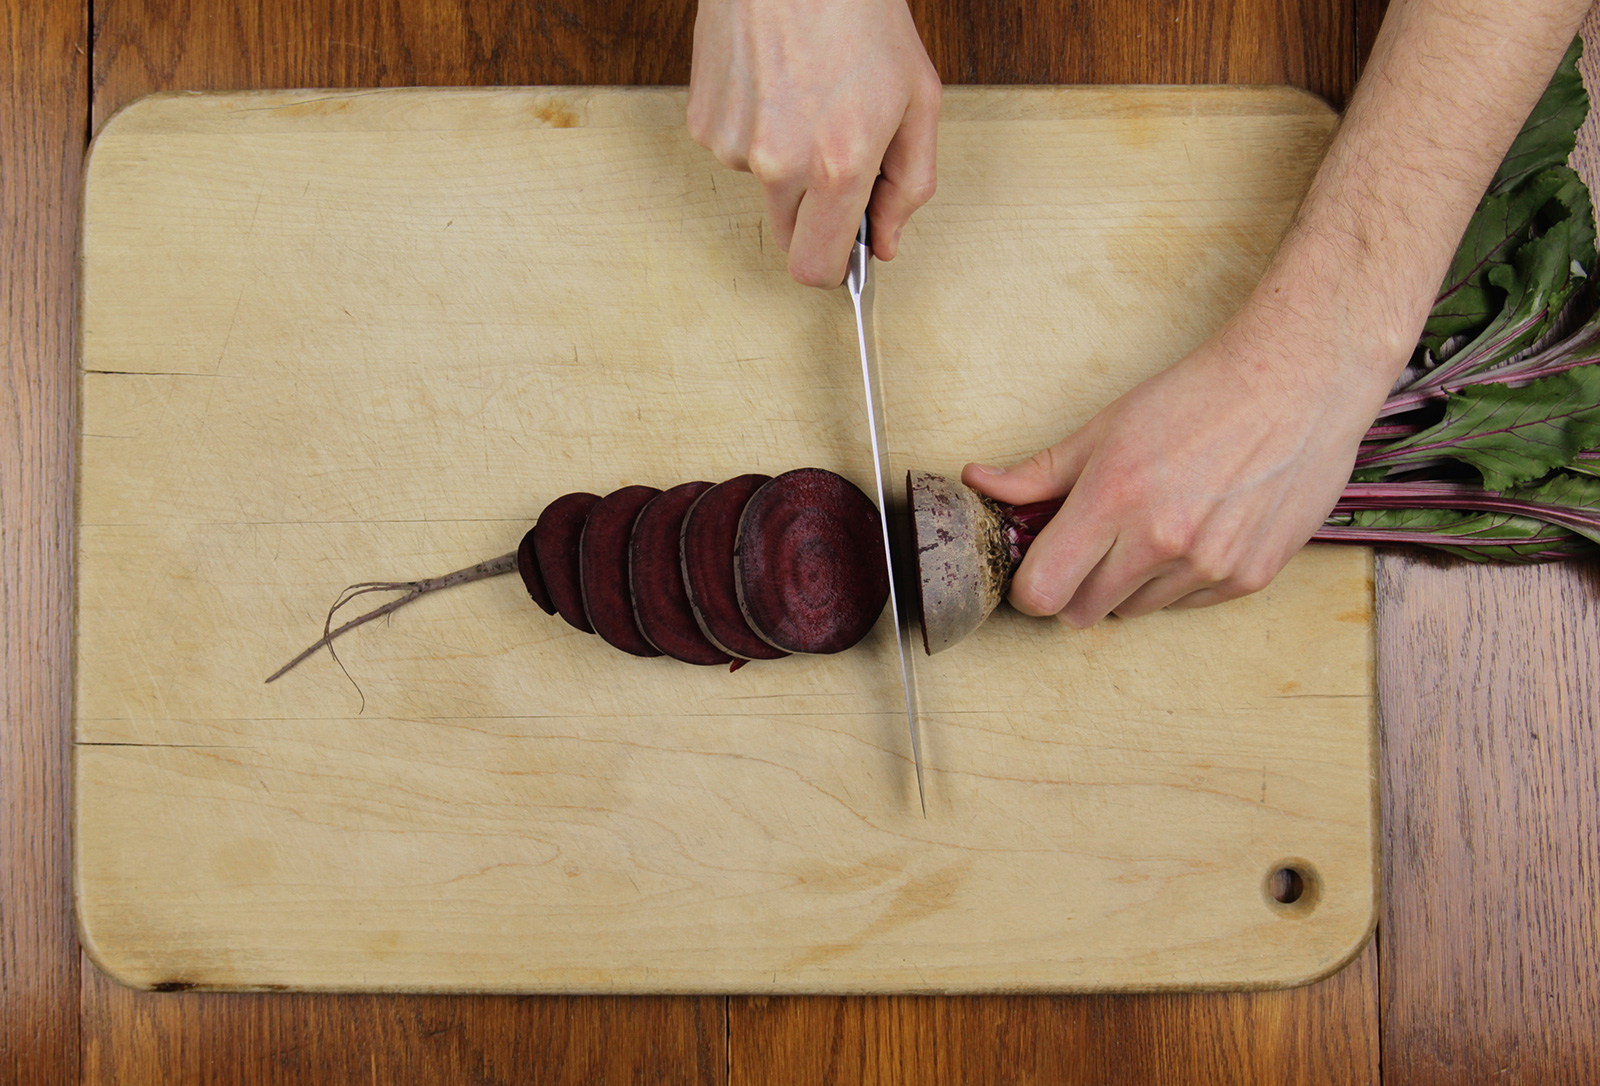 Slicing Up Beets.